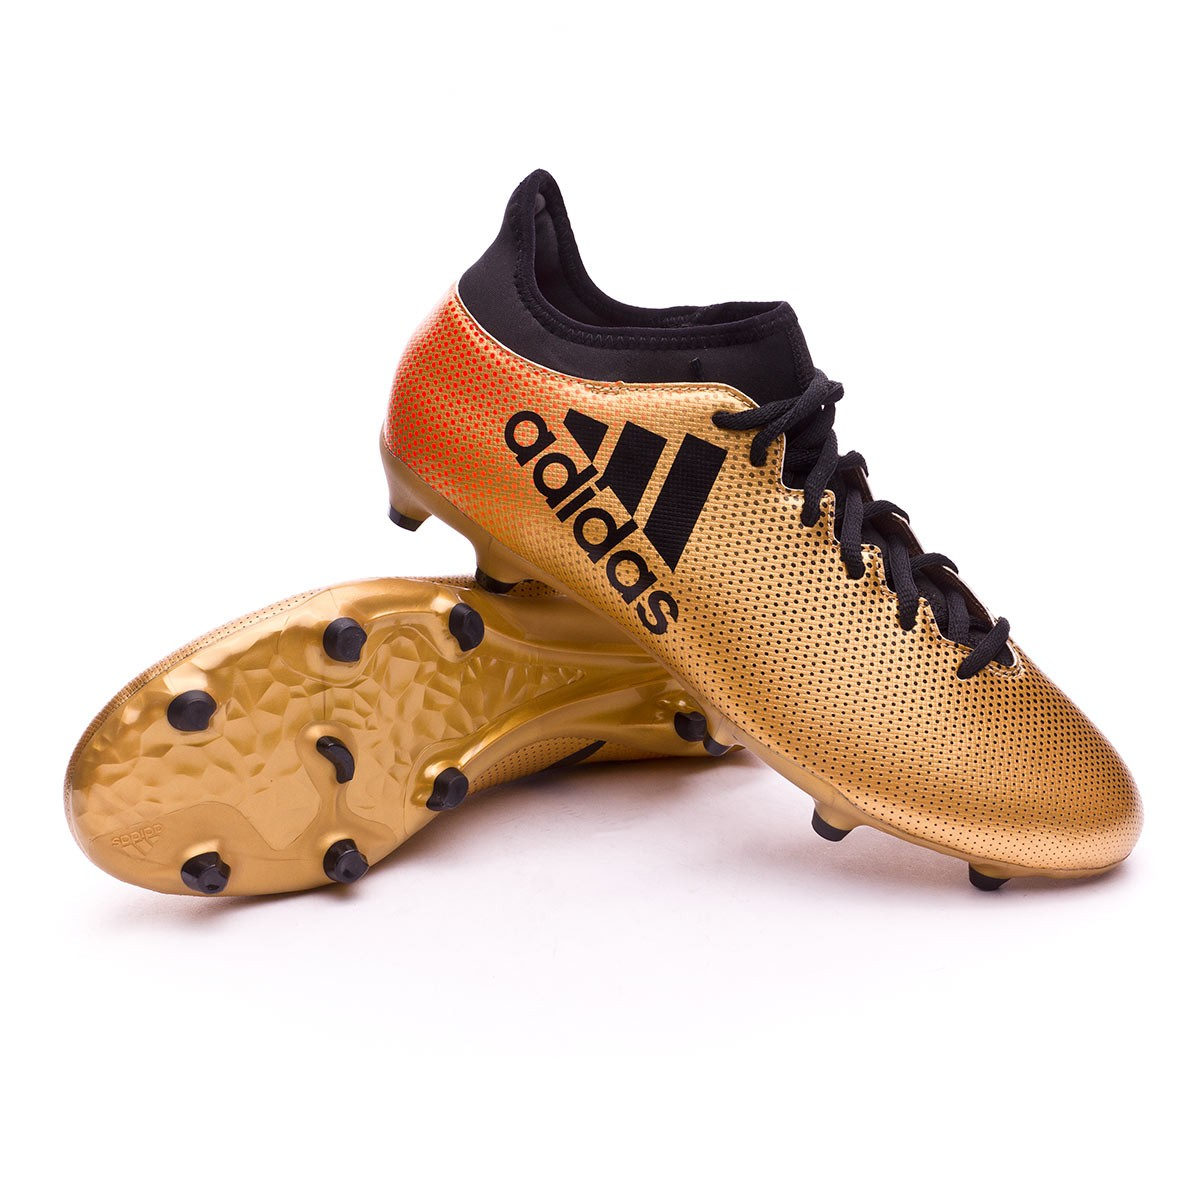 2a77308cc Football Boots adidas X 17.3 FG Tactile gold metallic-Core black ...